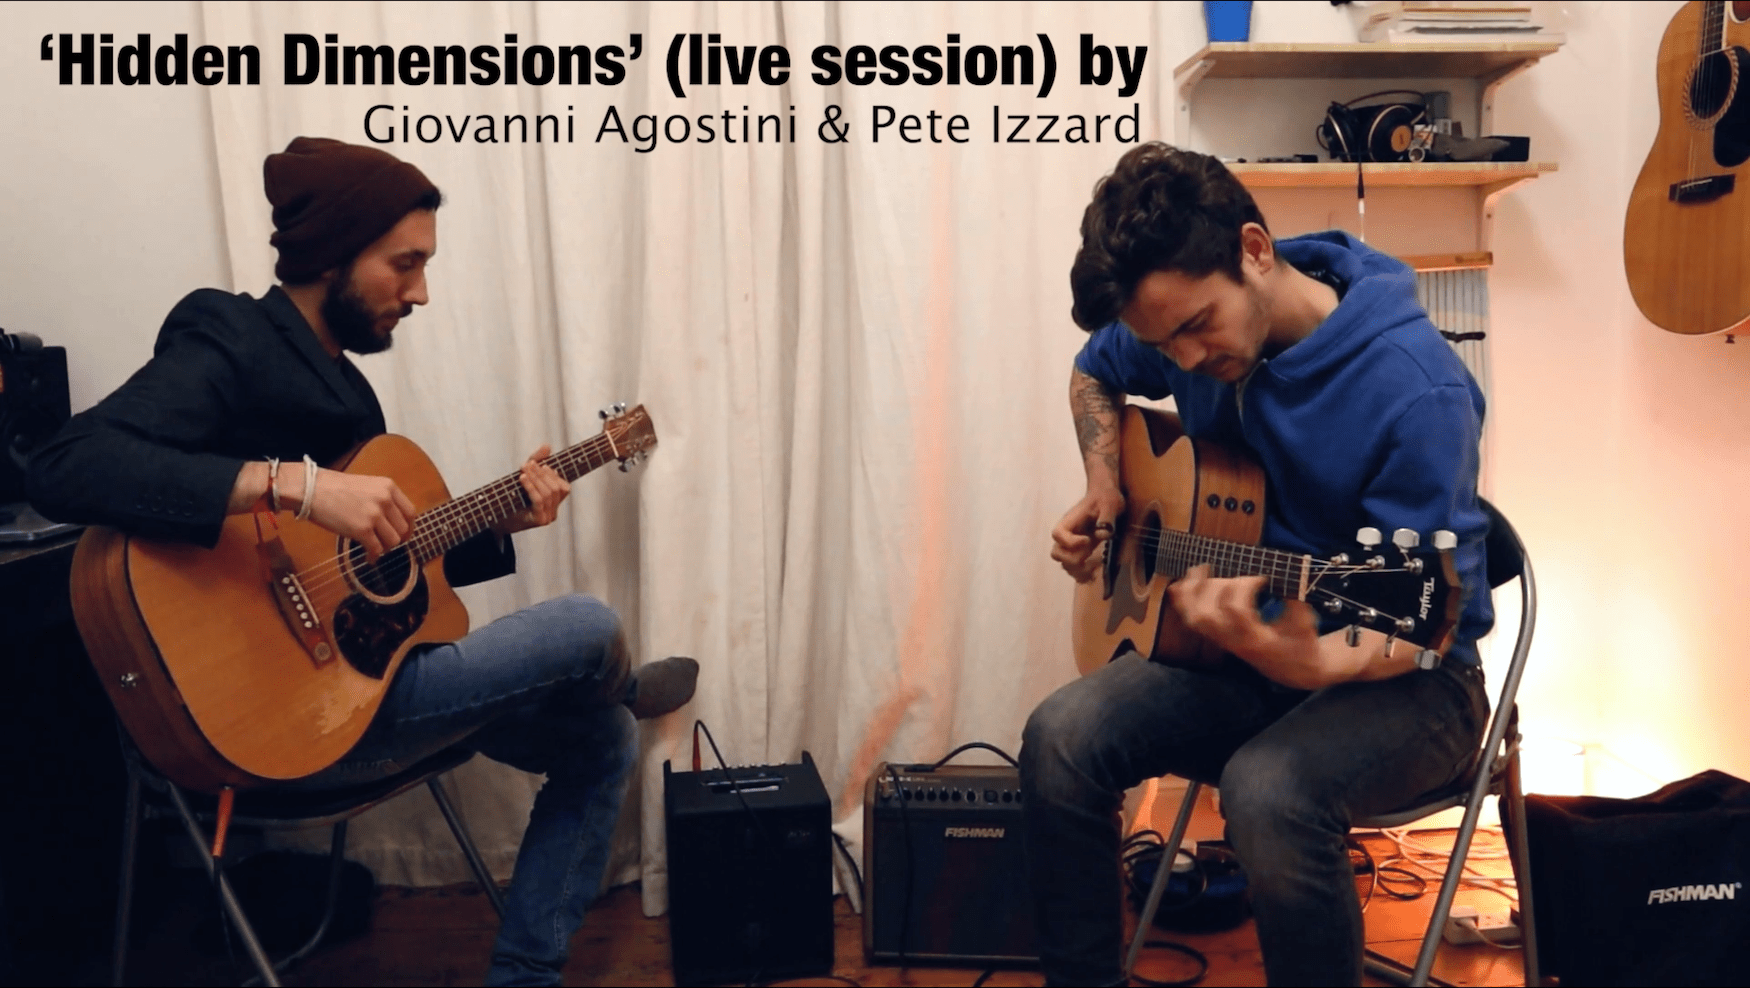 Hidden Dimensions (live session)